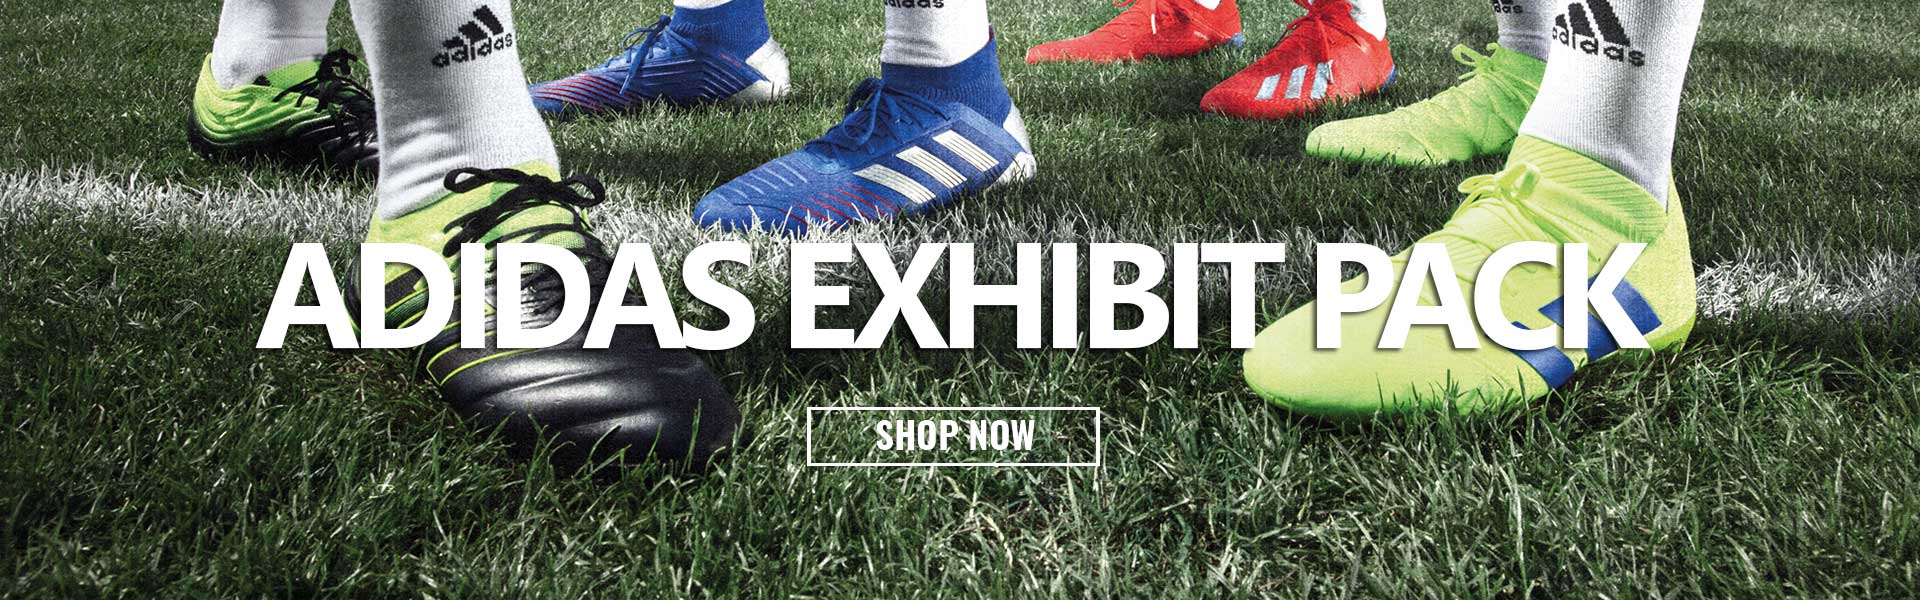 Adidas Exhibit Pack